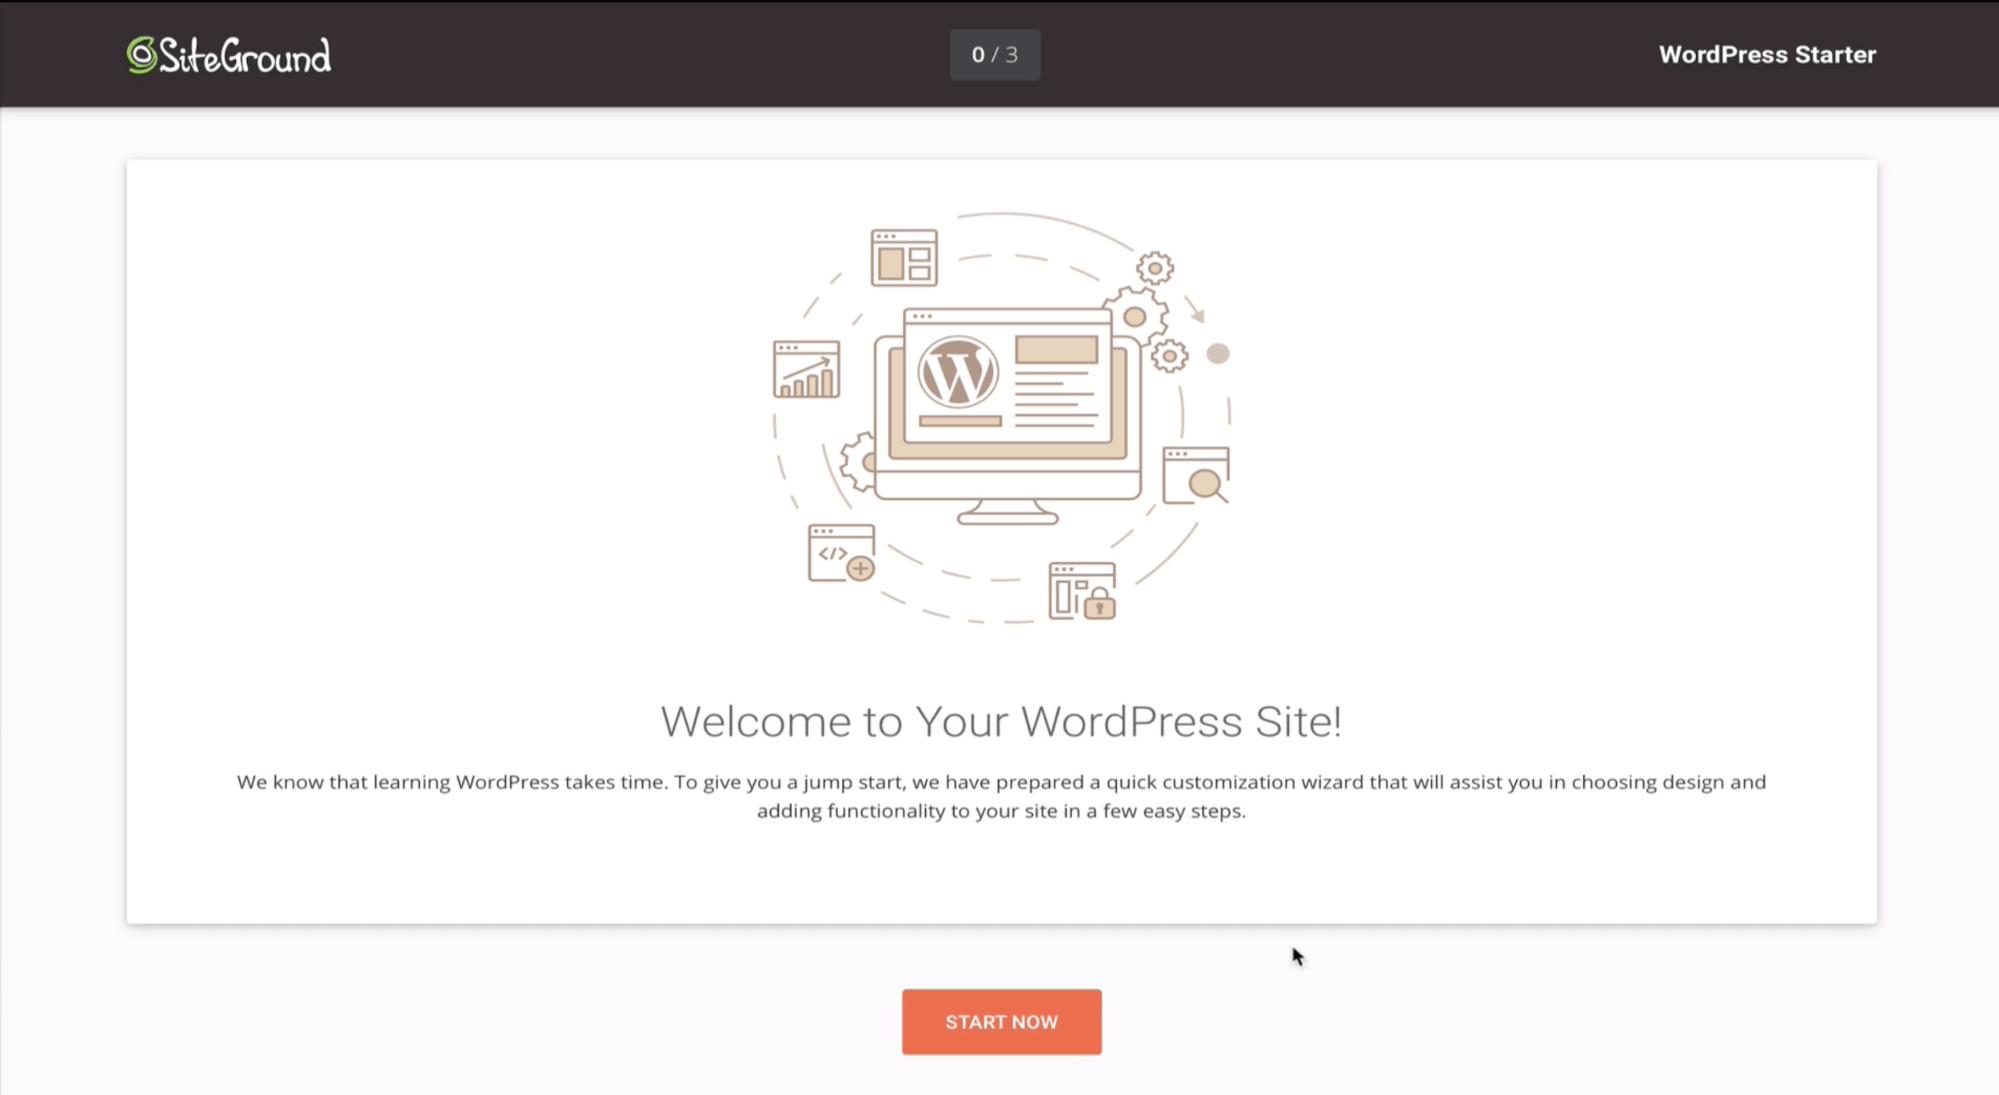 launching a wordpress site on siteground